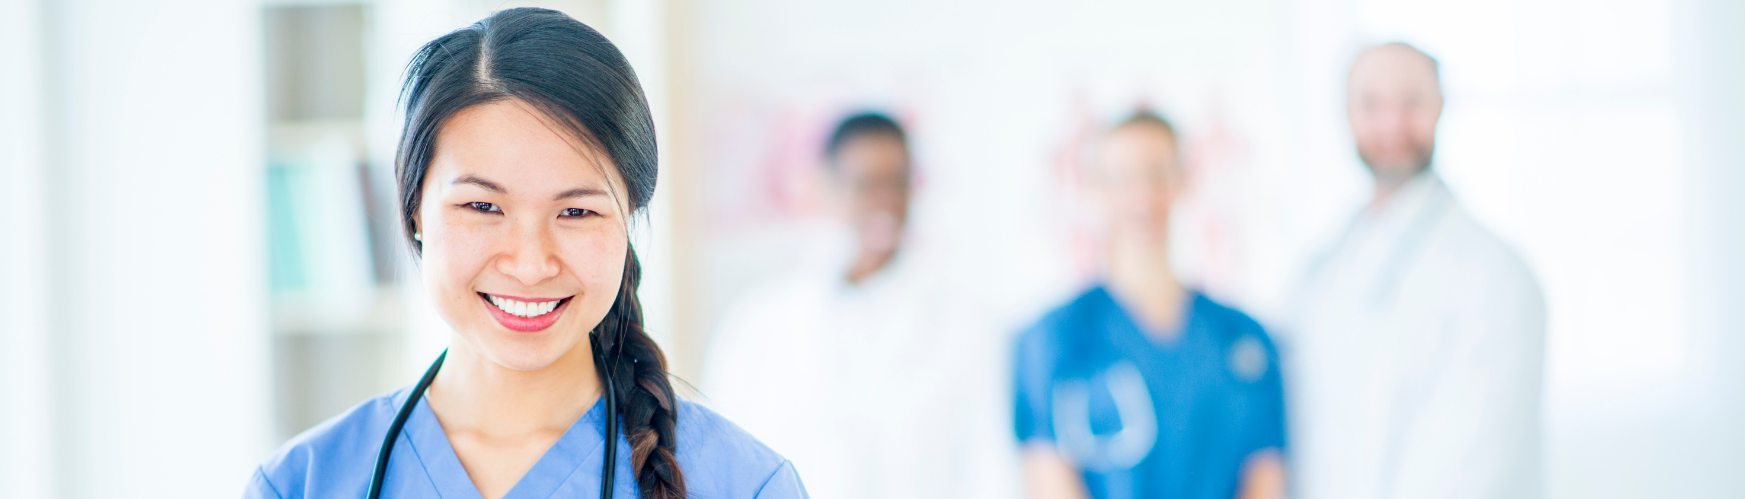 CITY & GUILDS HEALTH AND SOCIAL CARE RQF NVQ DIPLOMA COURSES FOR ADULT, ADOLESCENT AND CHILDREN